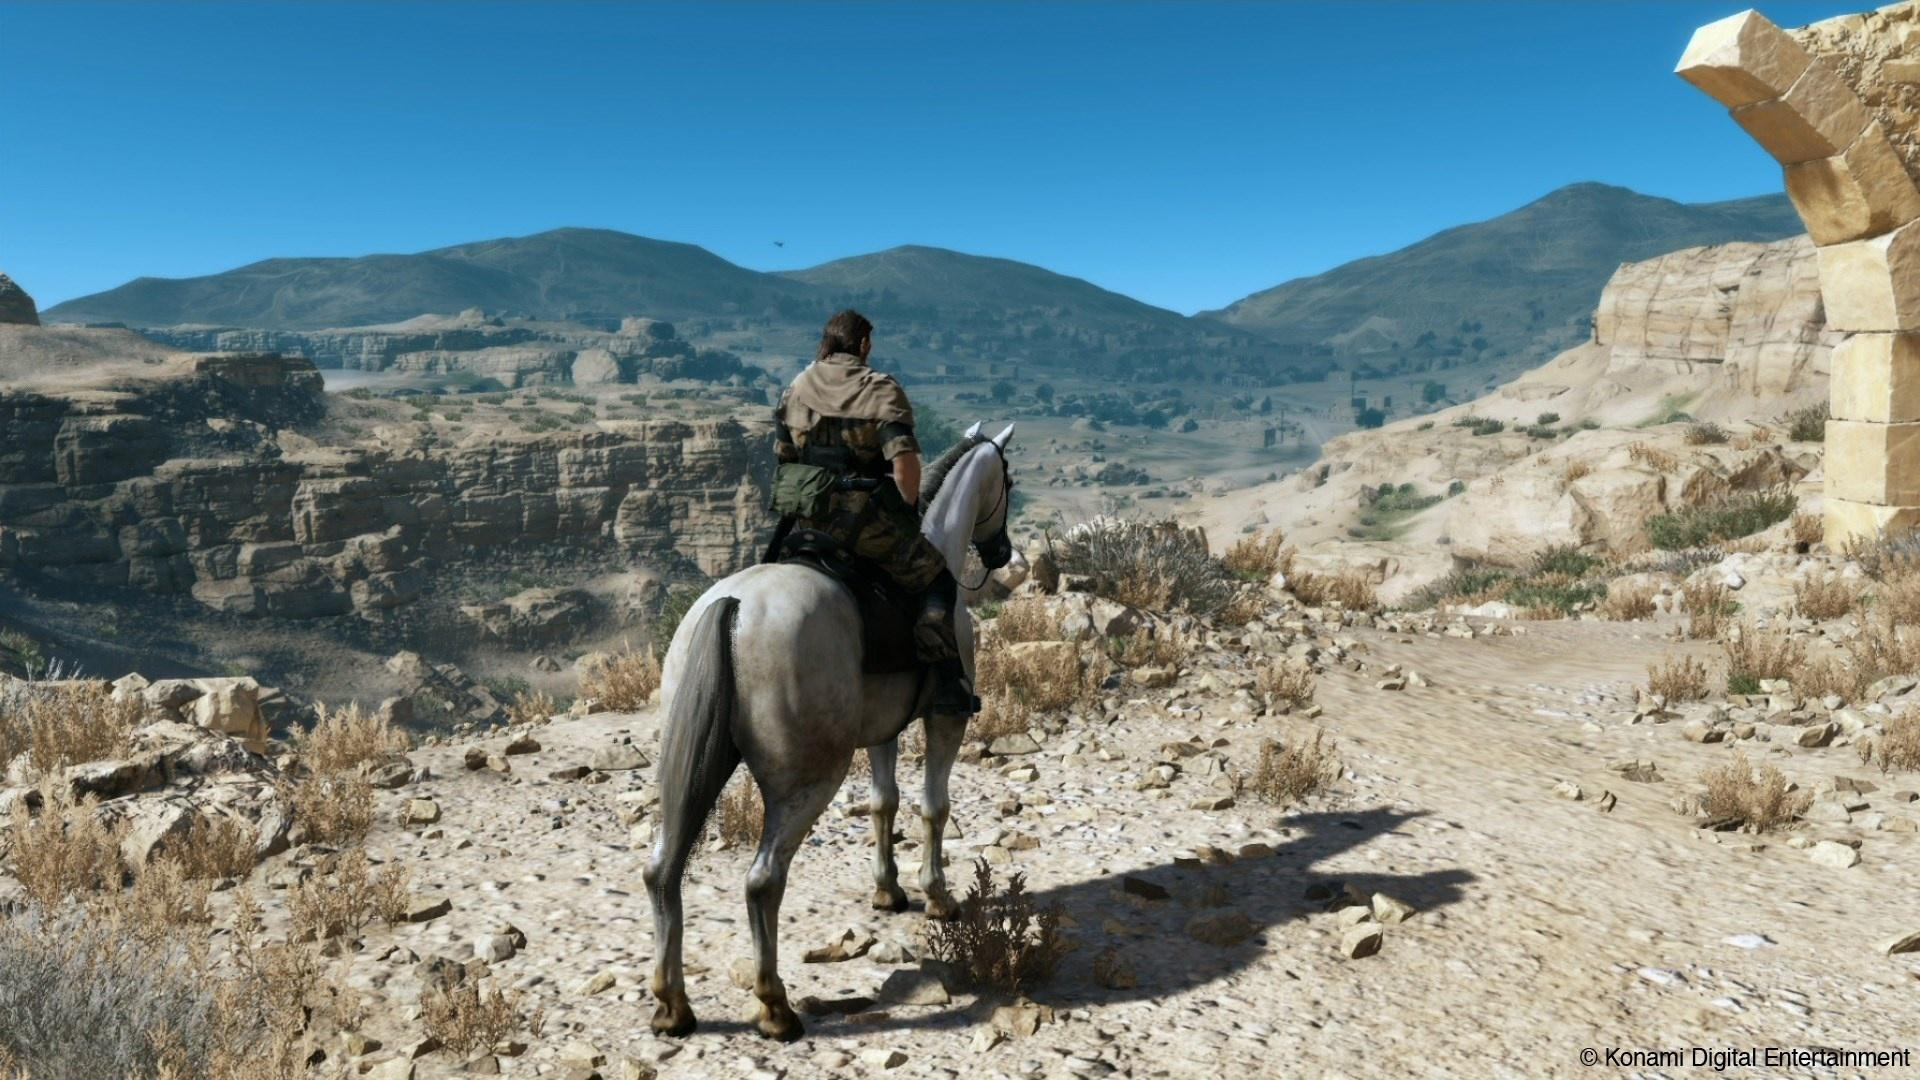 Konami's Fox Engine in full flow at the start of Metal Gear Solid V: The Phantom Pain